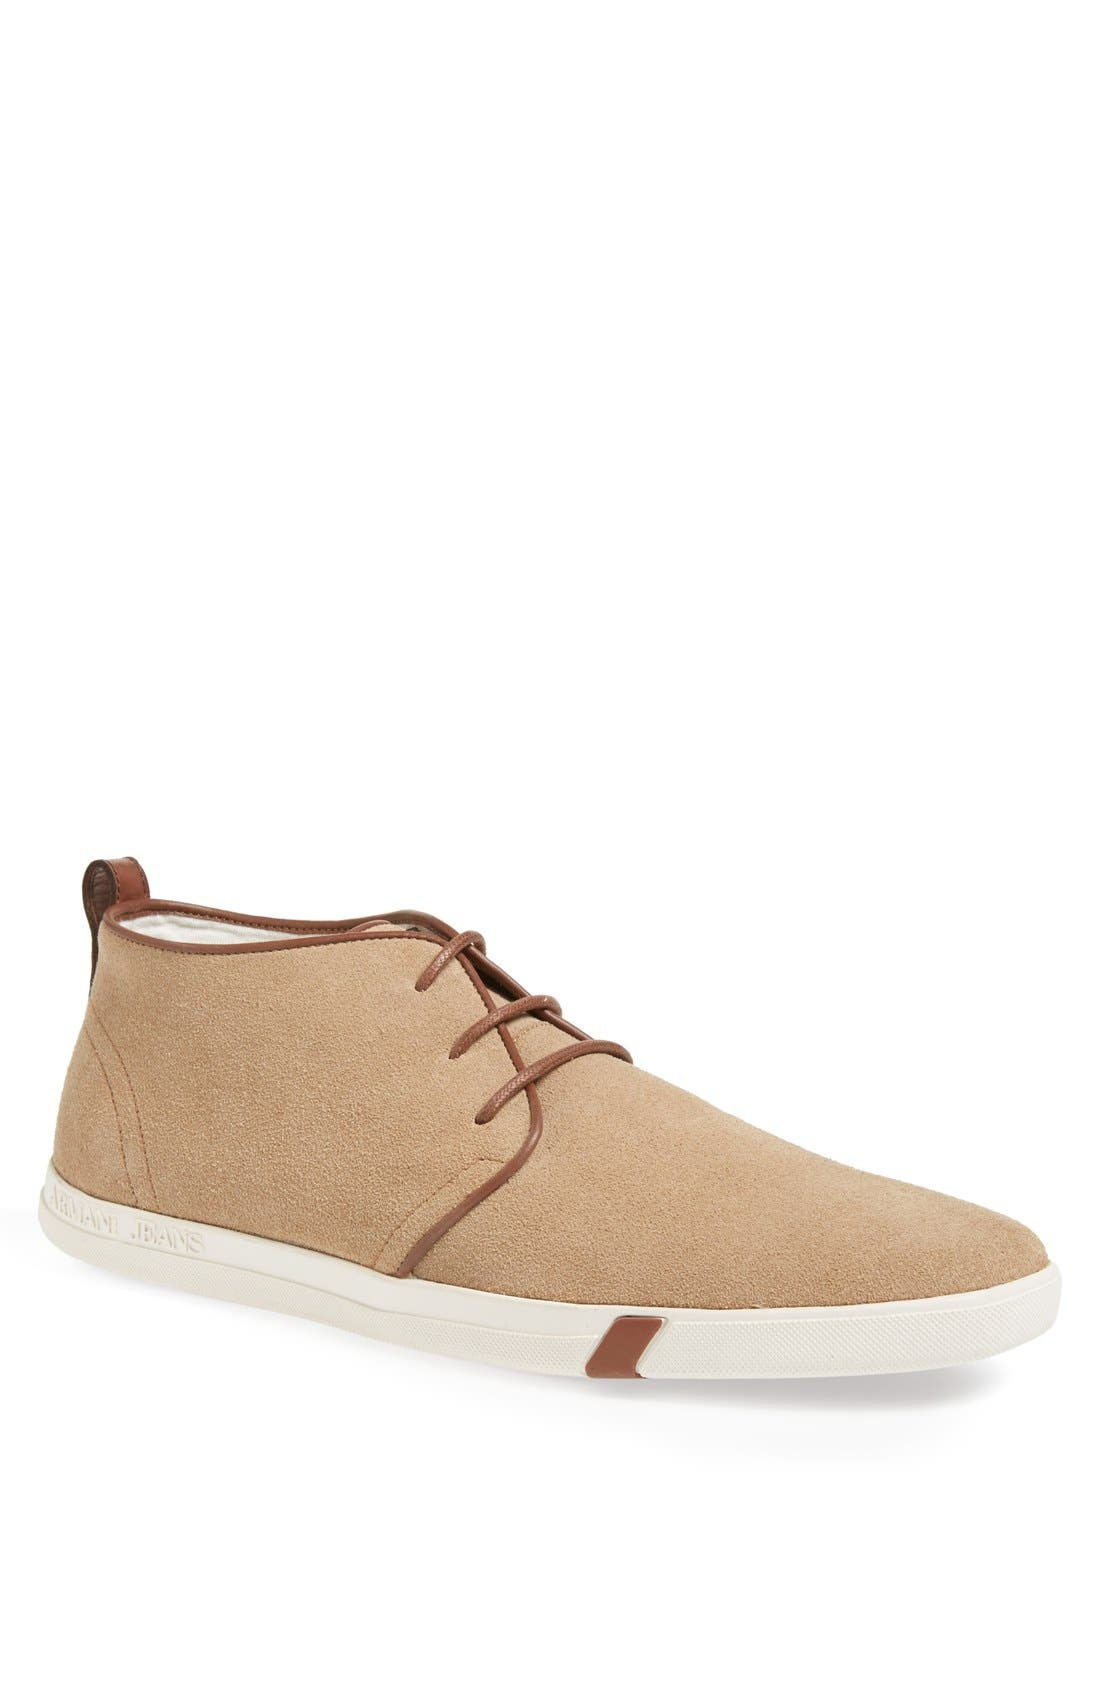 Main Image - Armani Jeans Suede Chukka Boot (Men)